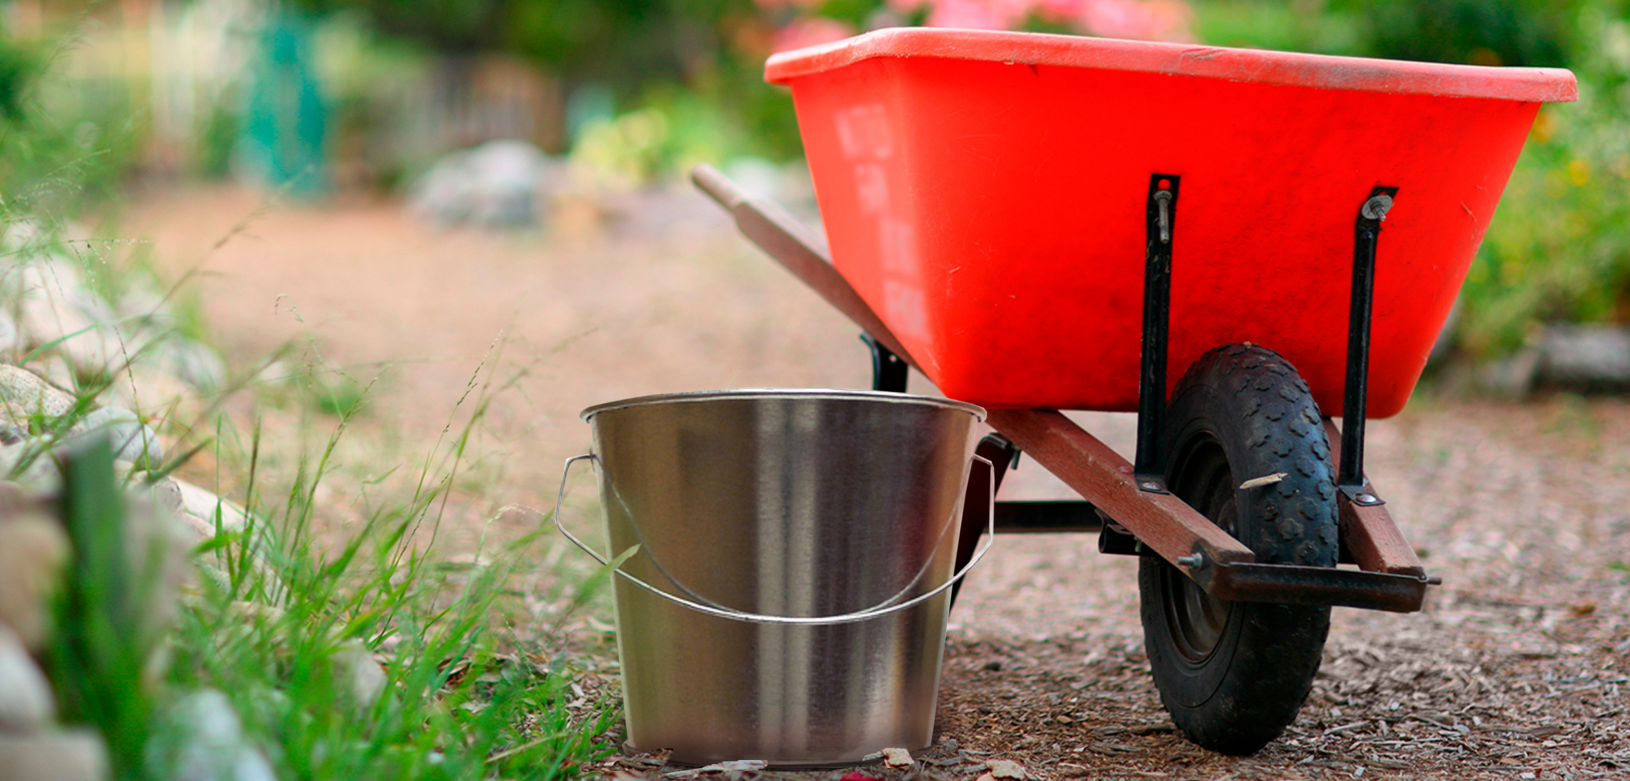 Witt Industrial Pail and Wheel Barrel Outdoor Environmental